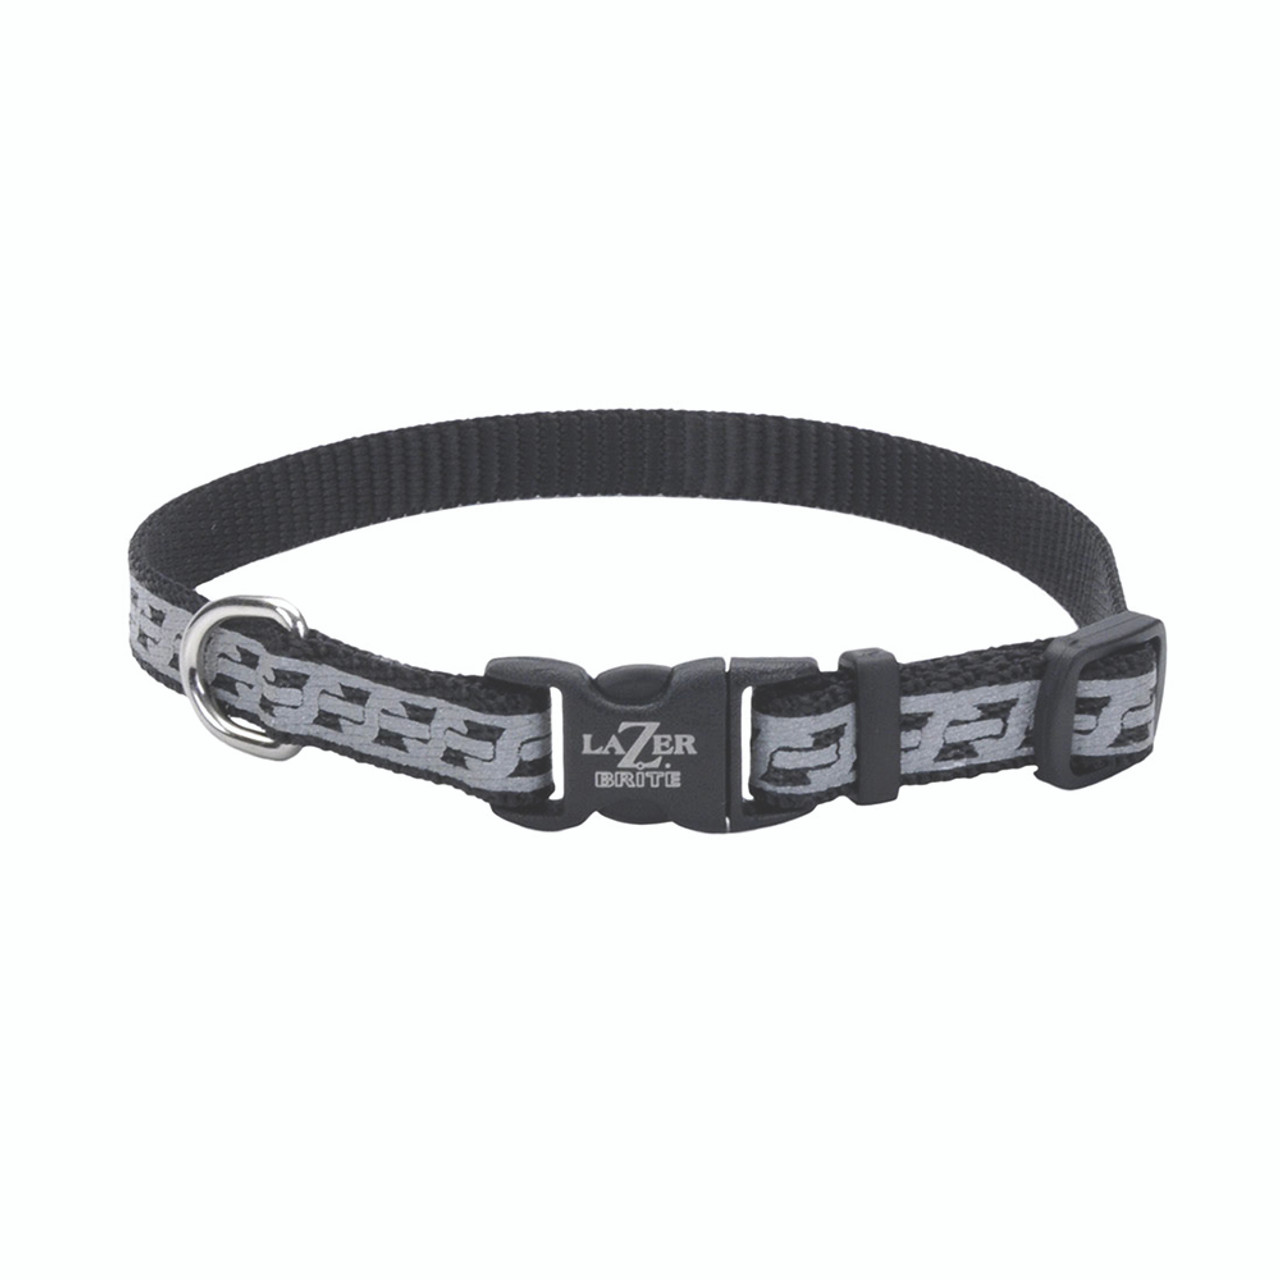 Lazer Brite Reflective Open-Design Adjustable Dog Collar